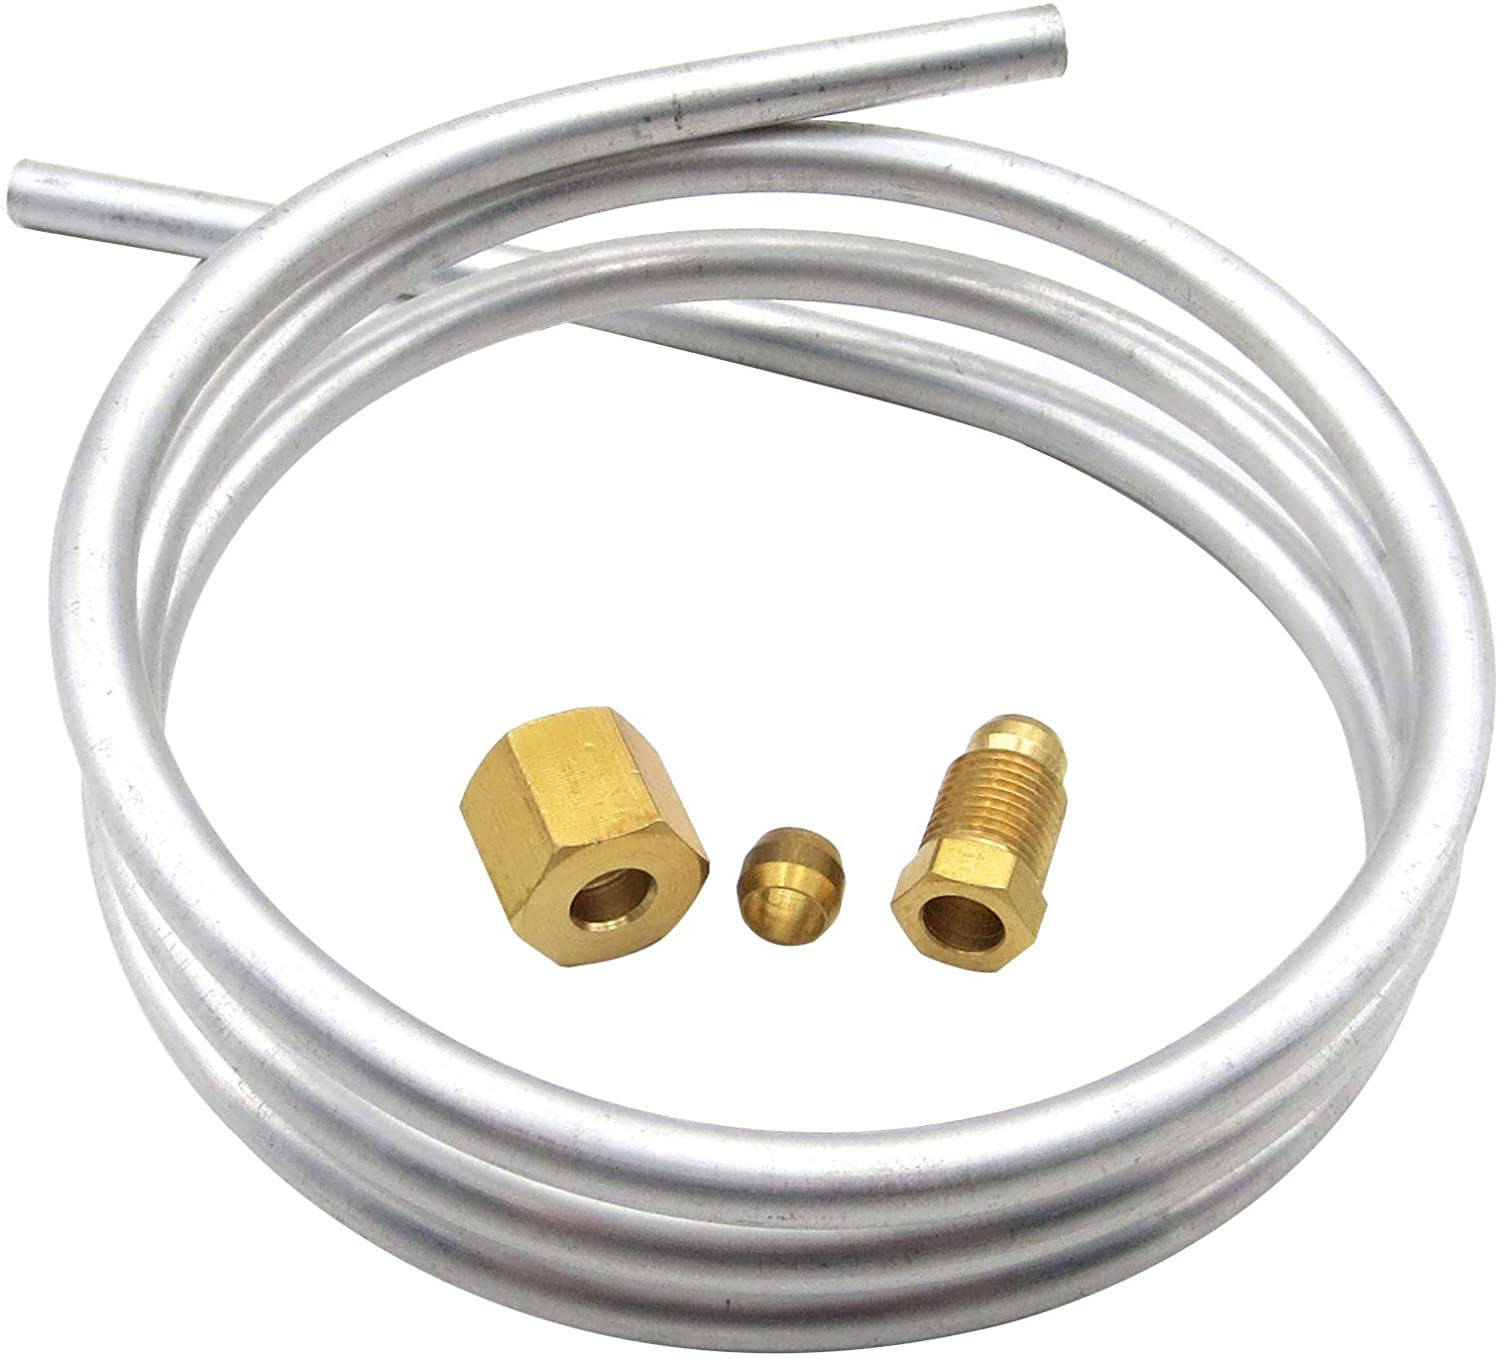 MENSI 1//4 Aluminum Tubing with Fittings M10x1 female and Male Length 1 meter